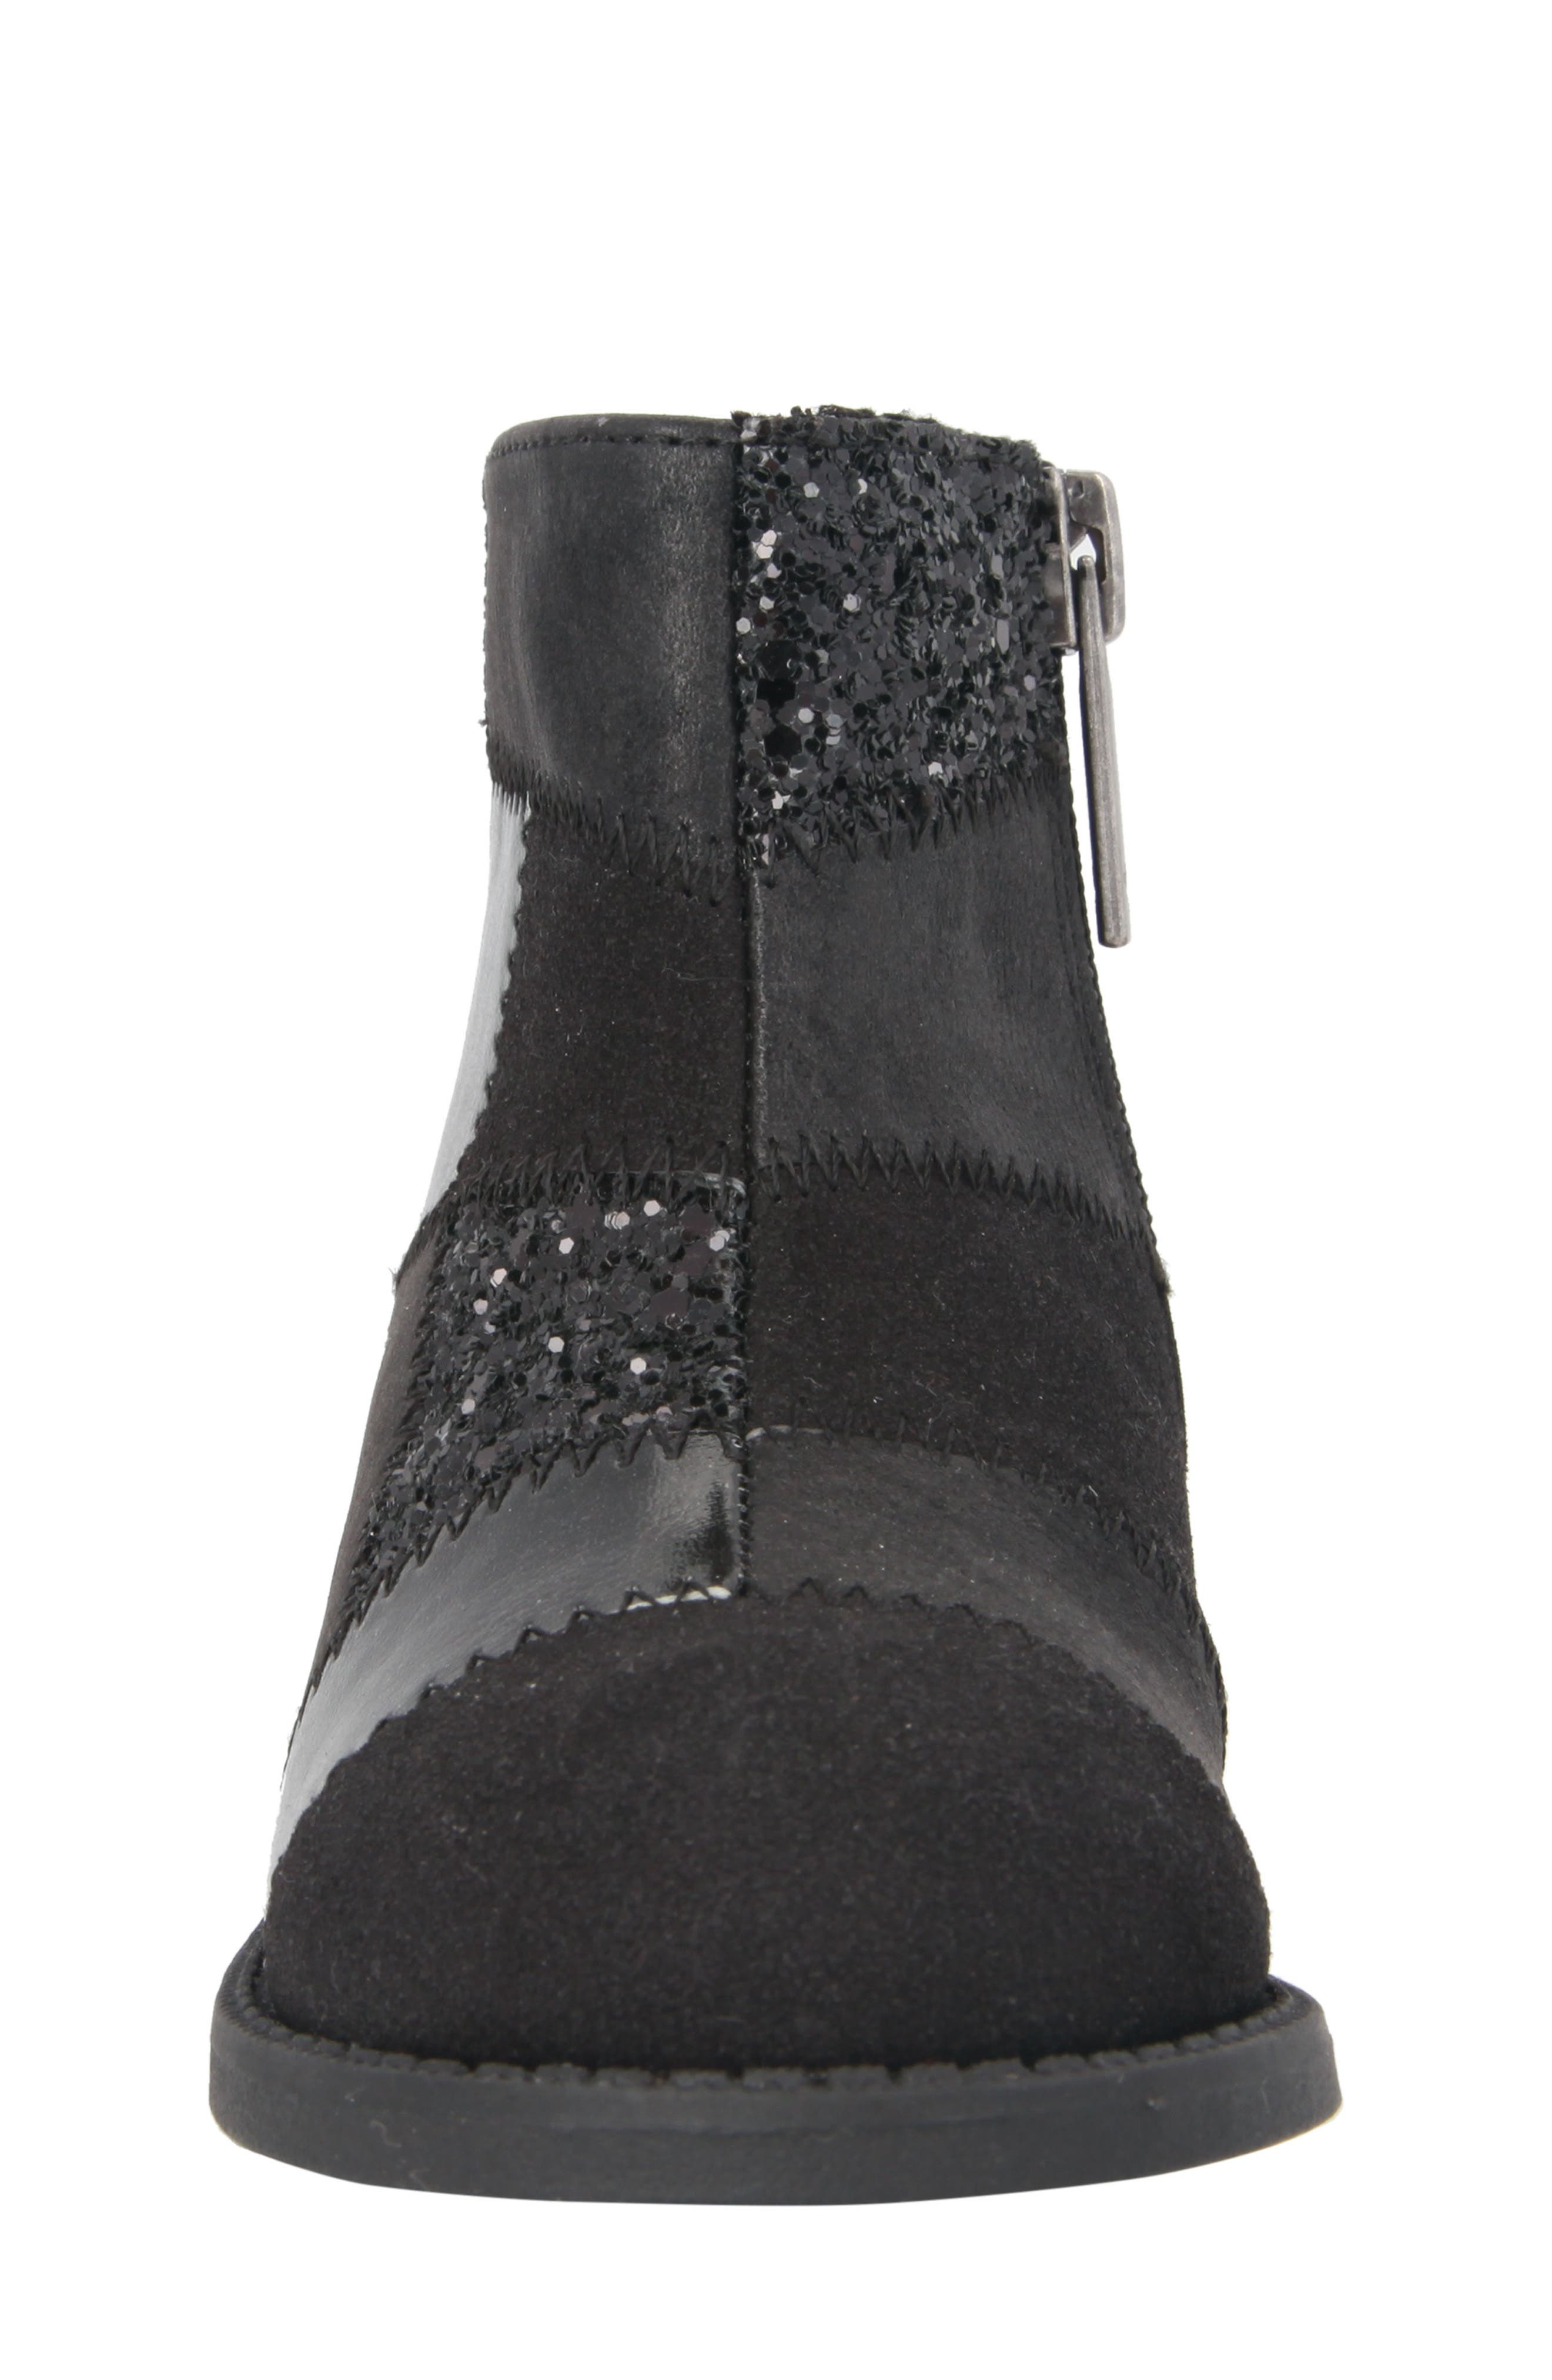 Ines Glittery Patchwork Bootie,                             Alternate thumbnail 4, color,                             Black Metallic/ Black Glitter